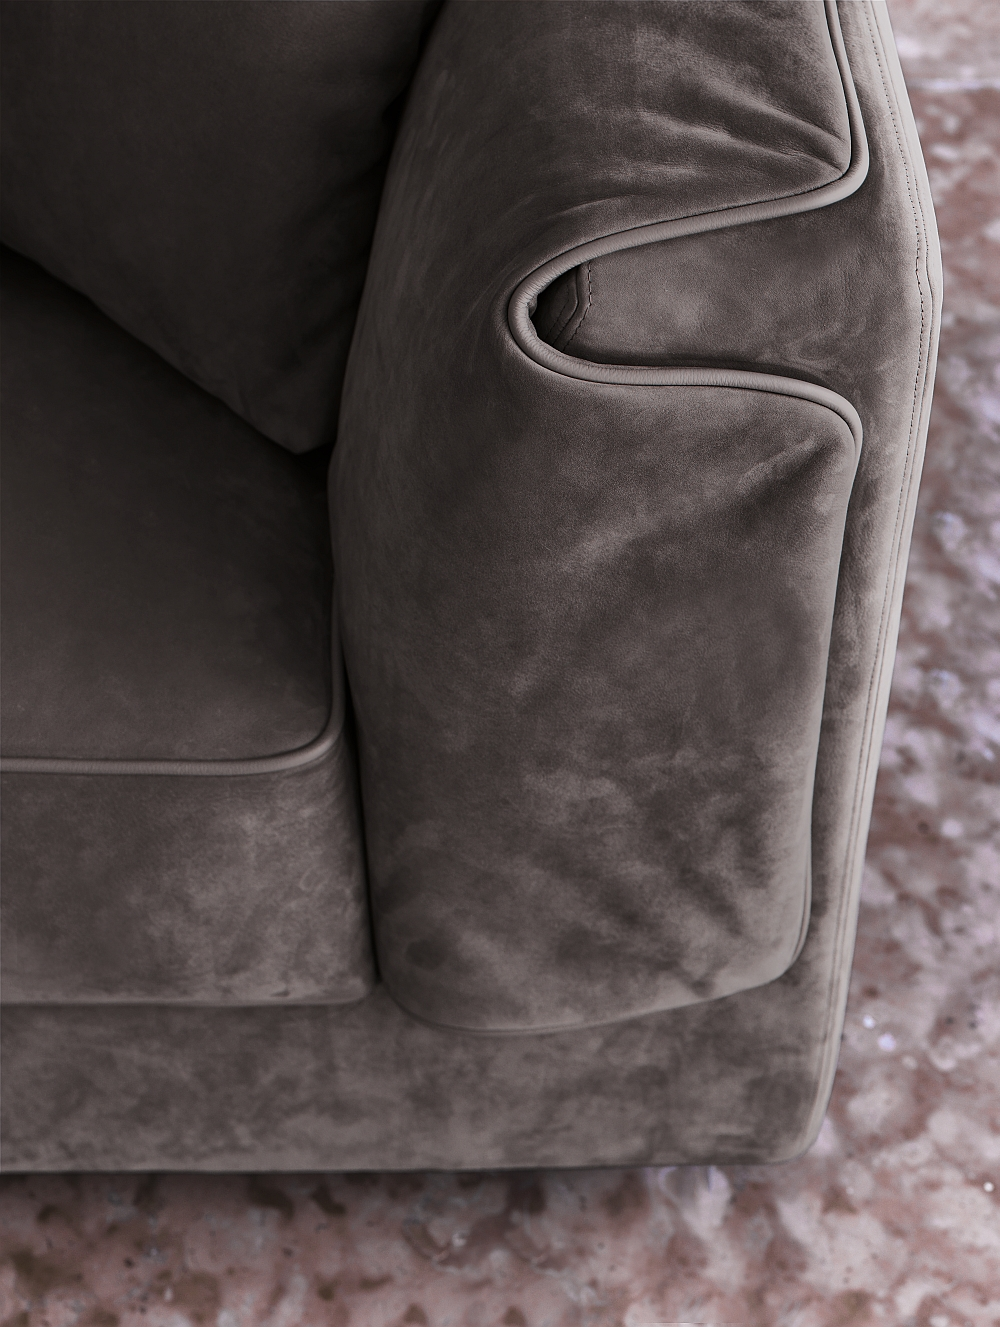 A closer look at the lovely sofa from FLOU